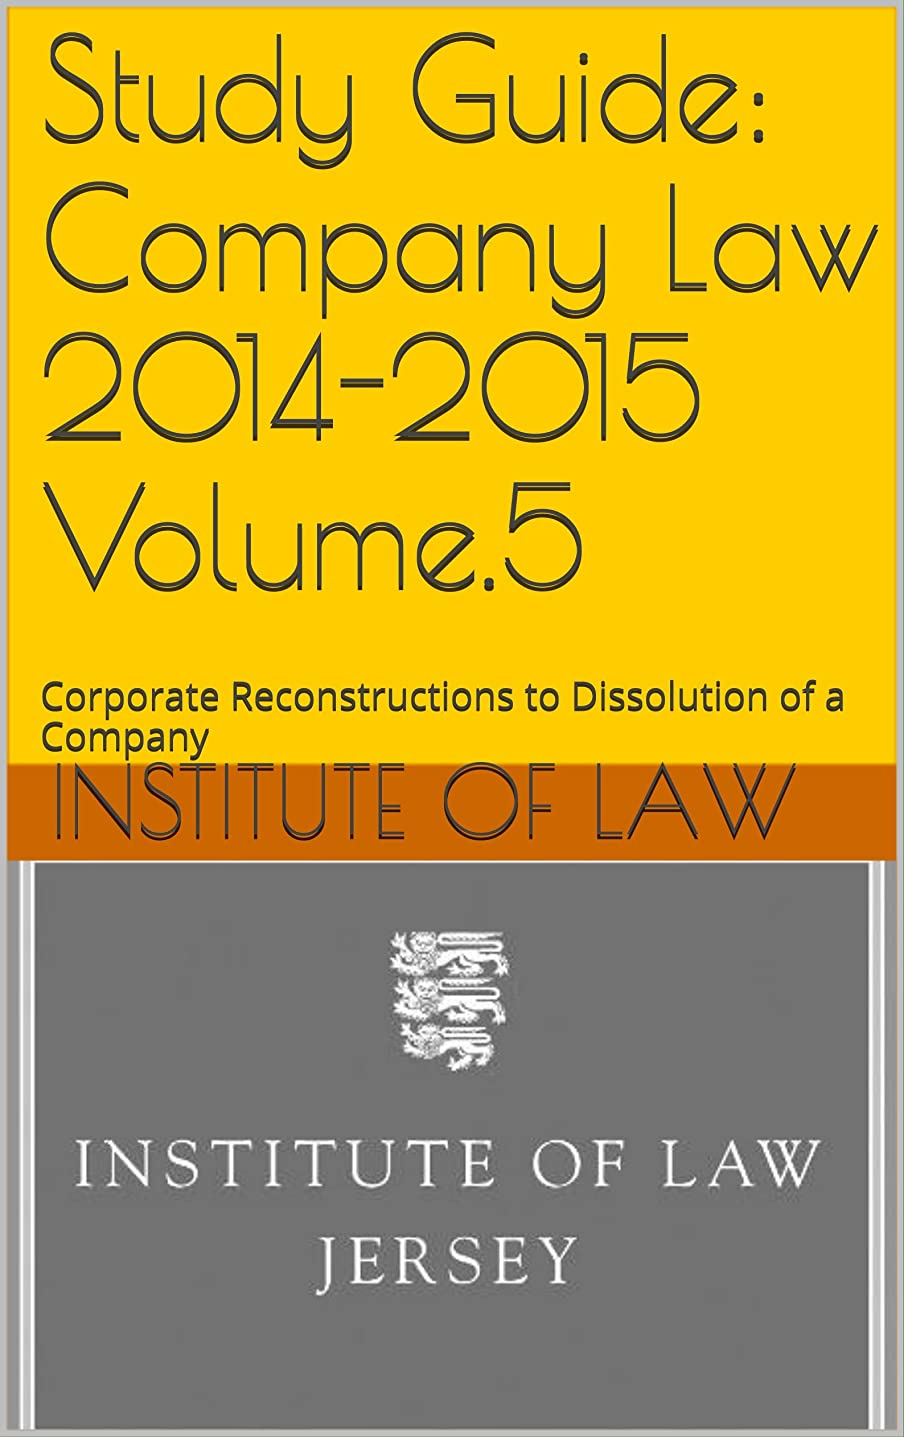 激怒誇大妄想性交Study Guide: Company Law 2014-2015 Volume.5: Corporate Reconstructions to Dissolution of a Company (Institute of Law Study Guides 2014-2015 Book 15) (English Edition)